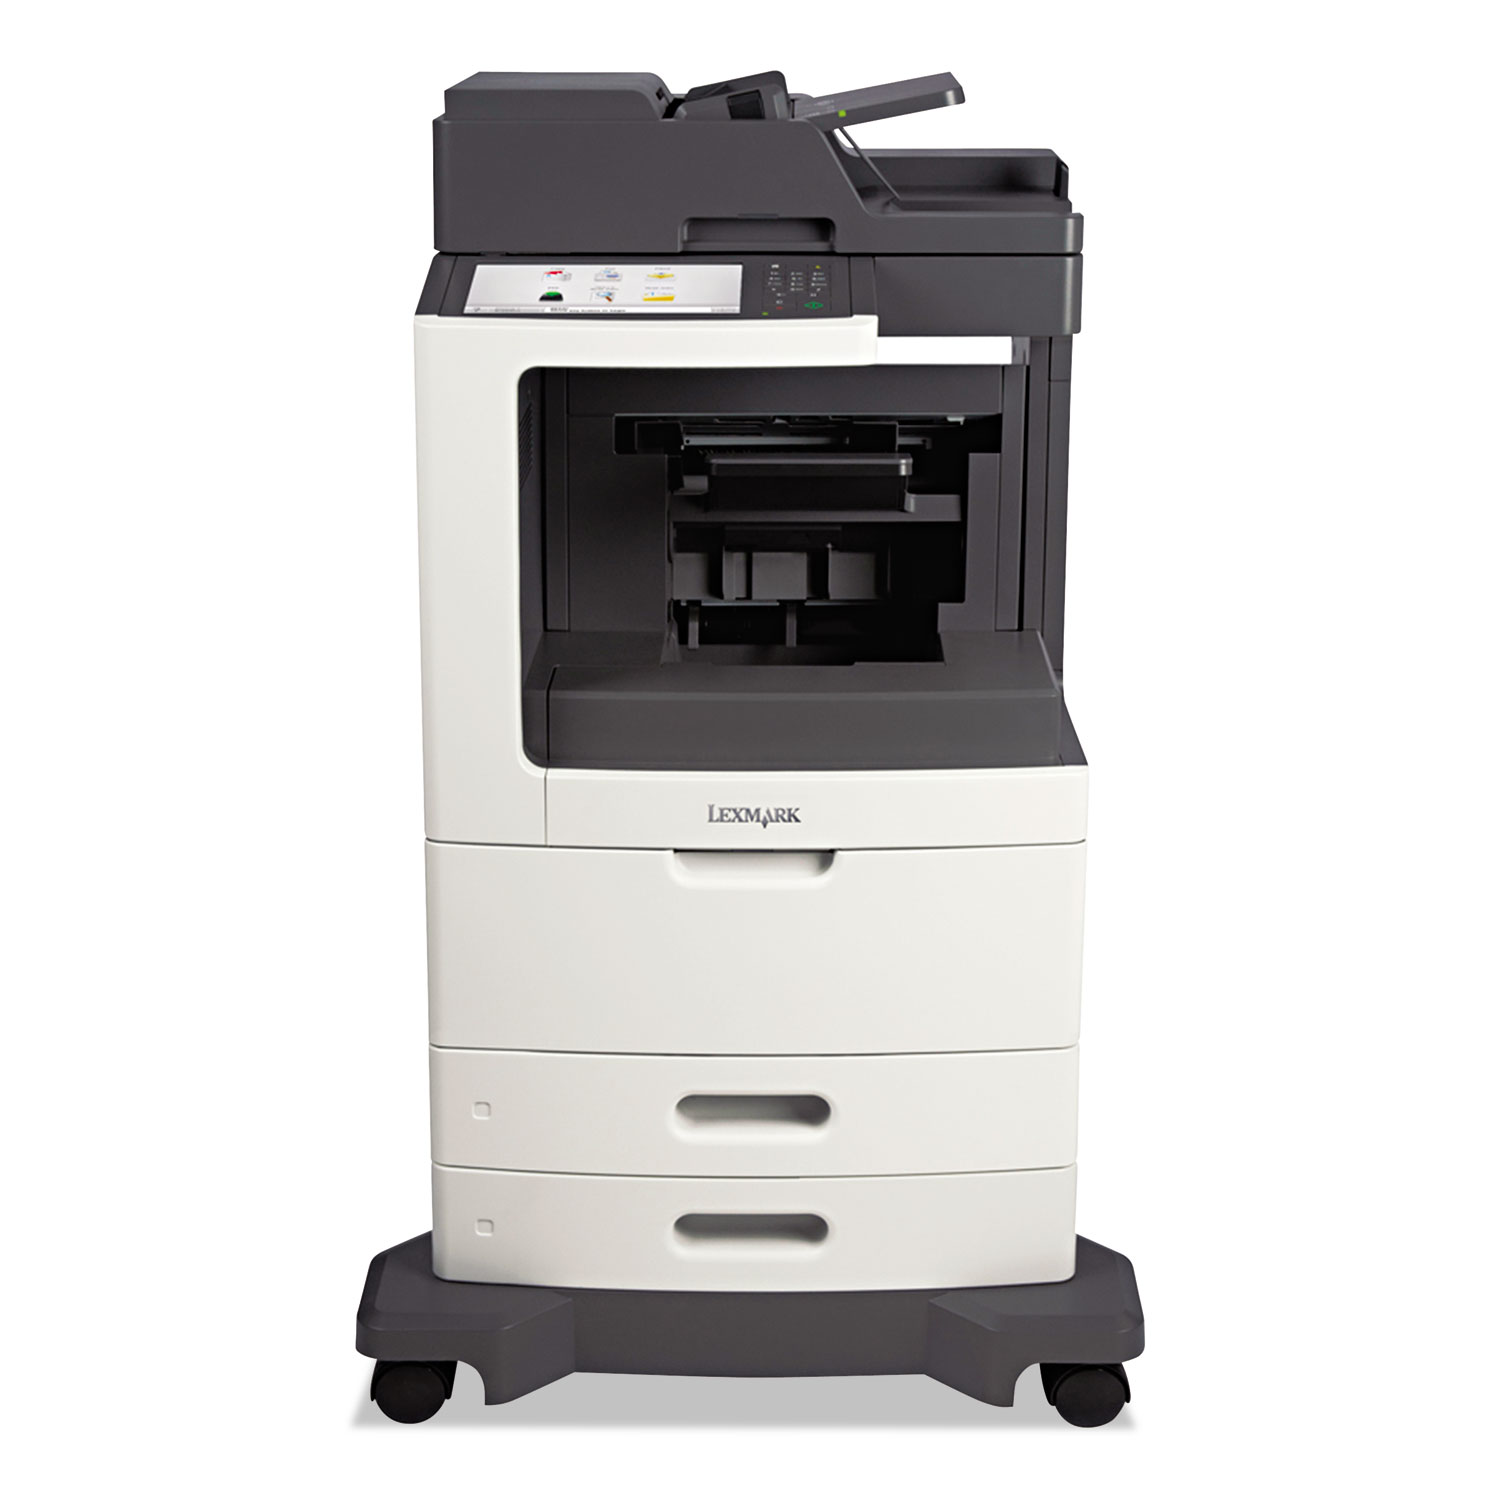 MX811dfe Multifunction Laser Printer, Copy/Fax/Print/Scan